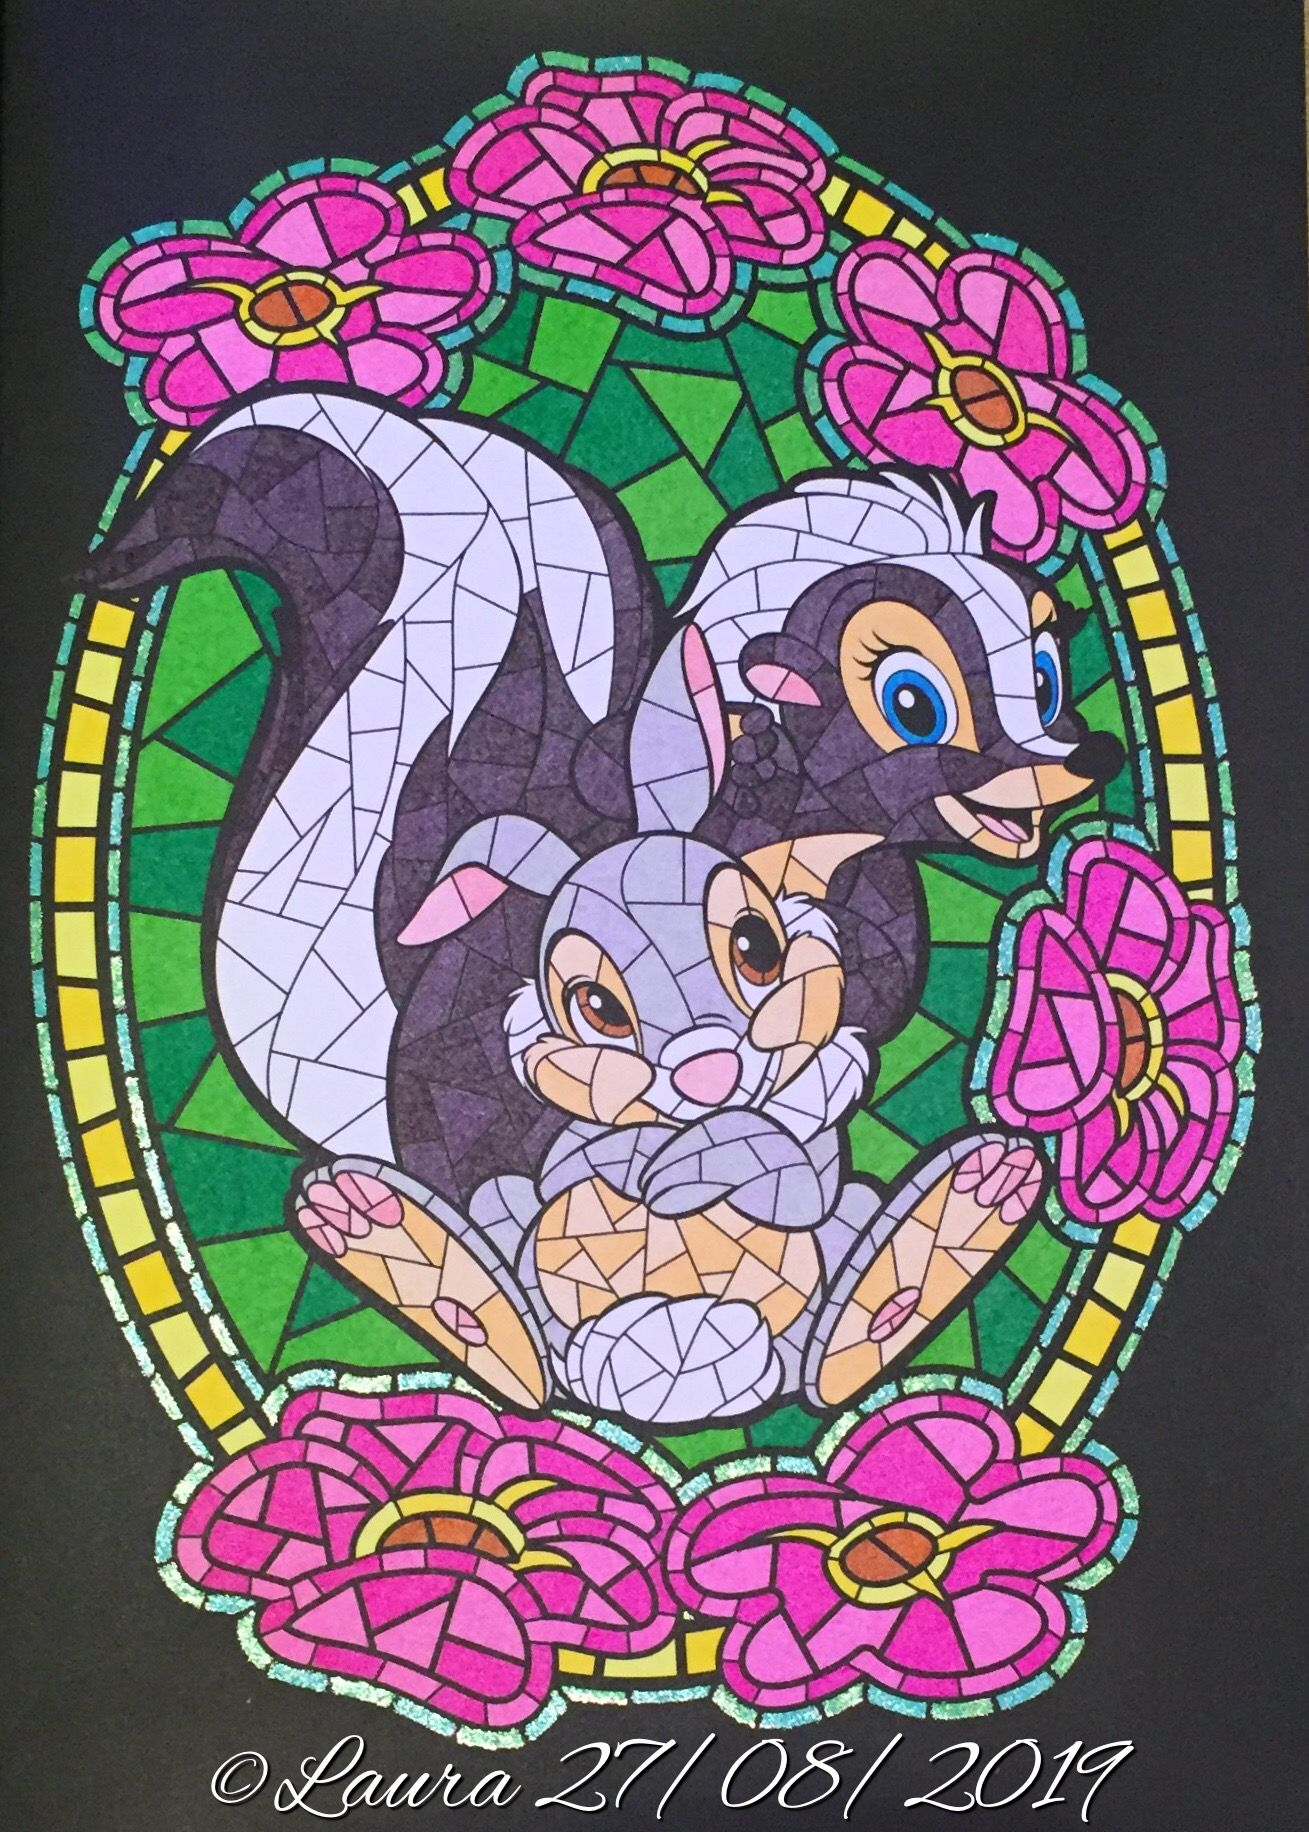 Thumper and Flower (Bambi) from Hachette Heroes Disney Vitraux